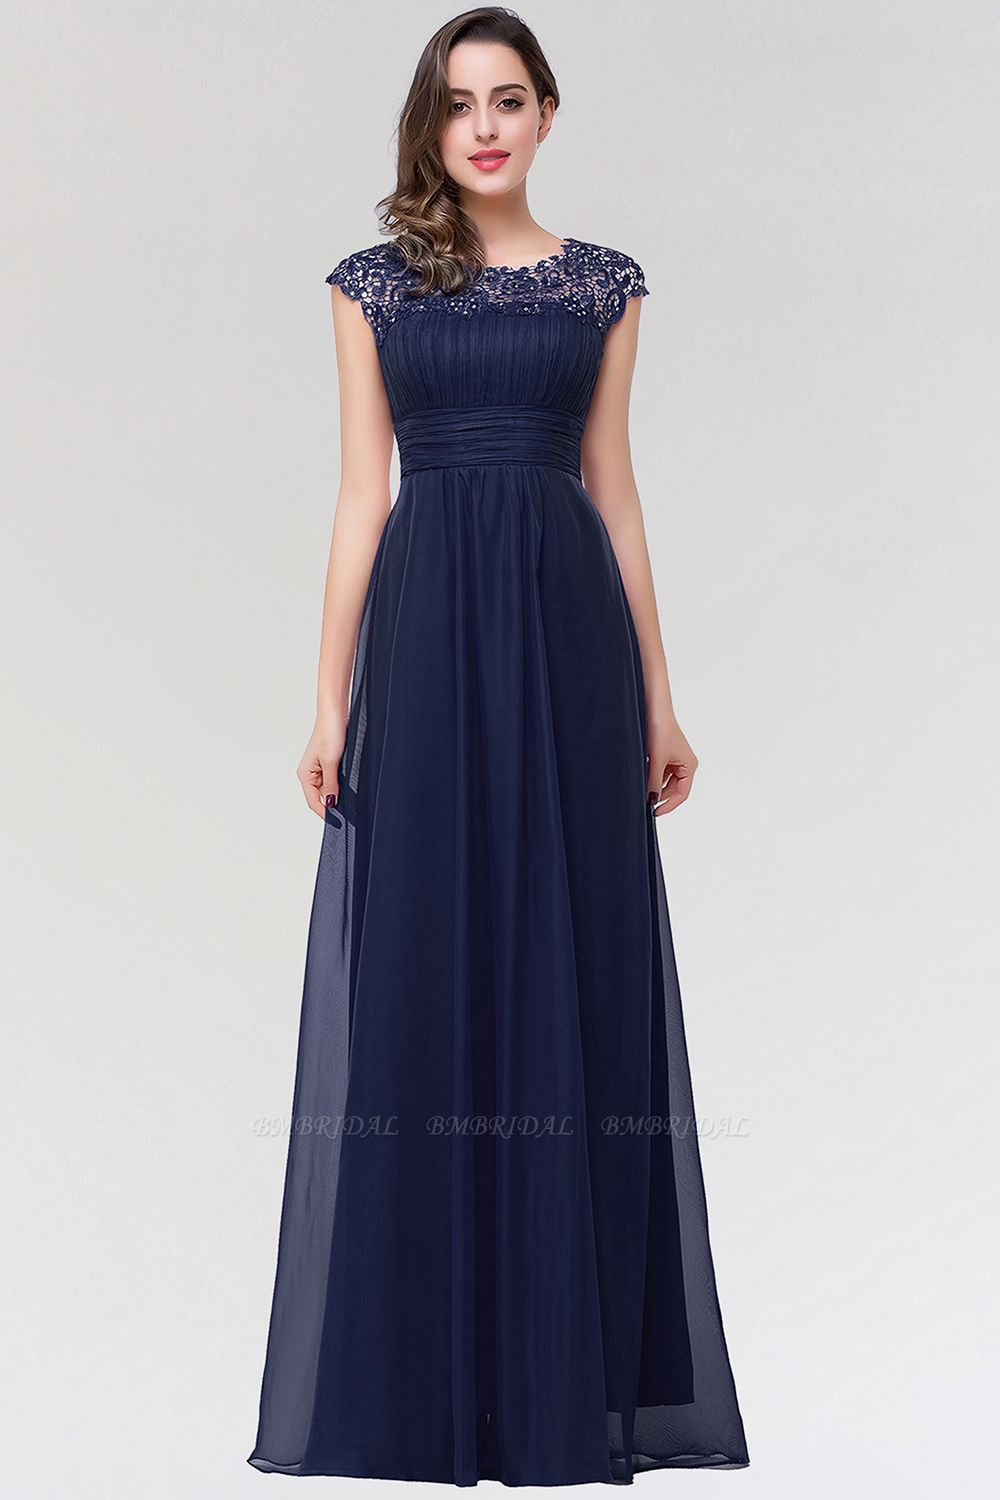 Elegant Chiffon Pleated Navy Lace Bridesmaid Dress with Keyhole Back